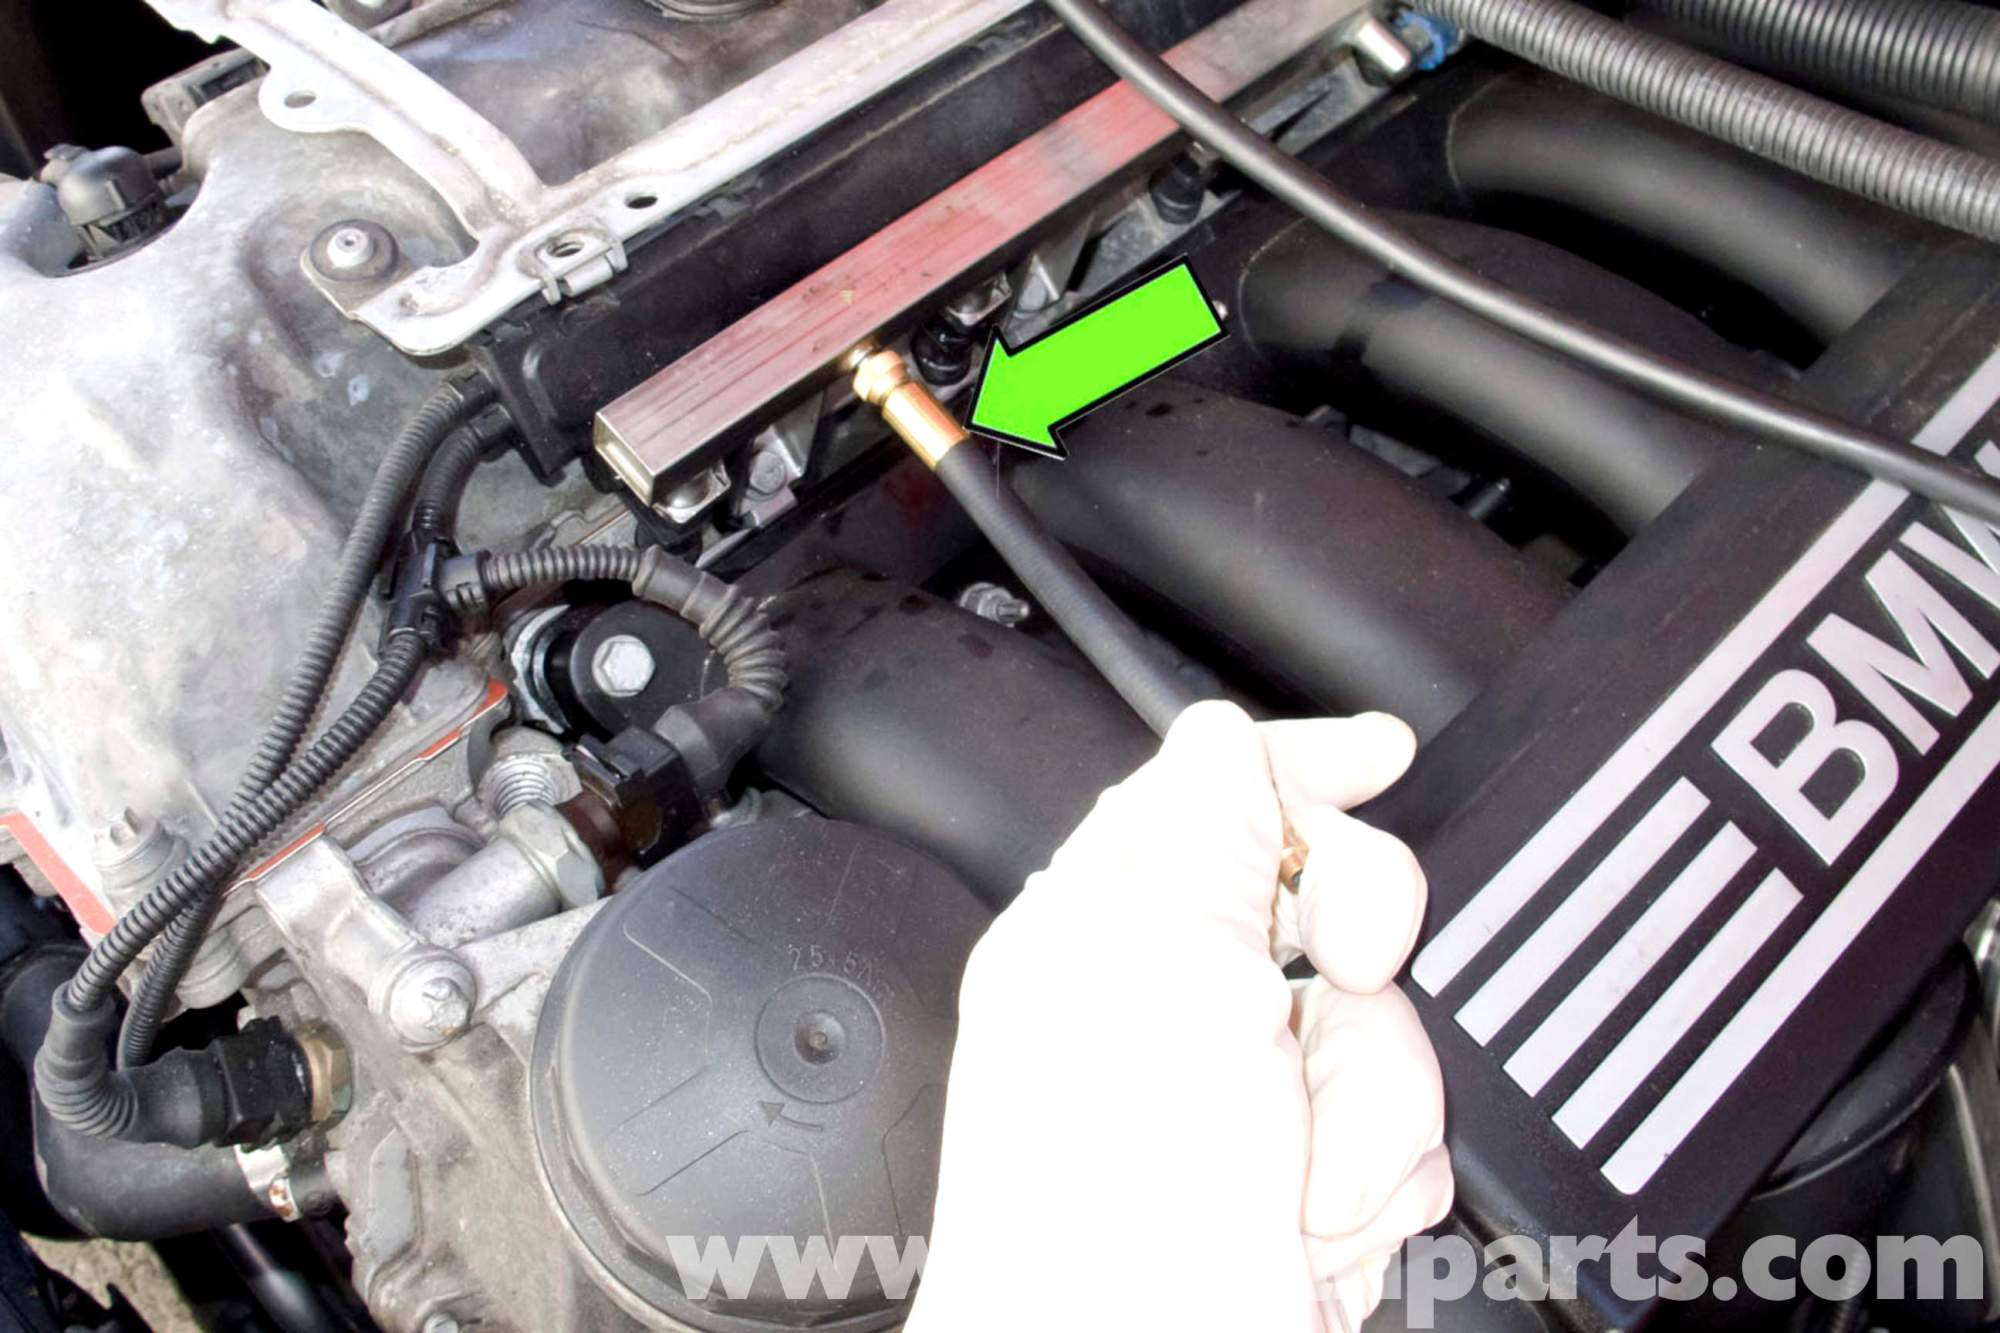 hight resolution of 02 bmw x5 fuse diagram 02 free engine image for user removing f150 4 6 fuel rail